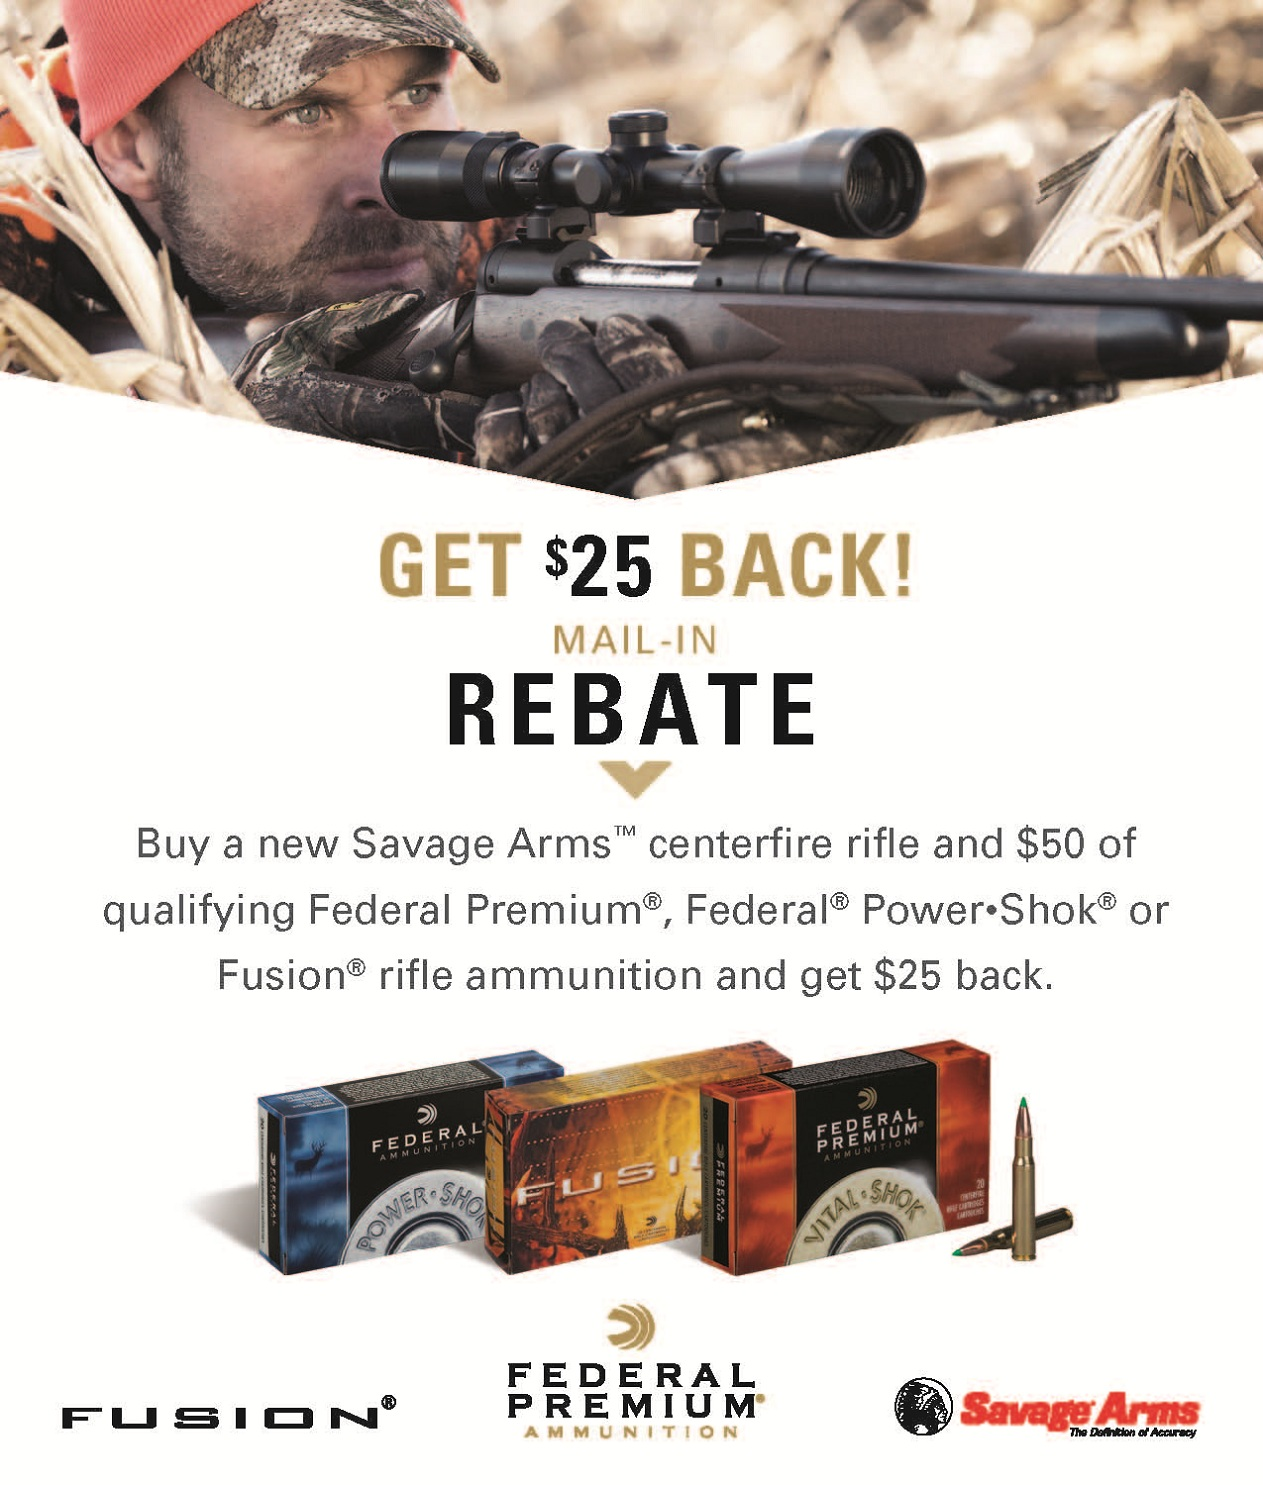 Federal Ammunition Savage Arms Deliver Sure Shot At Savings With 25 Mail In Rebate Program Curly Underway